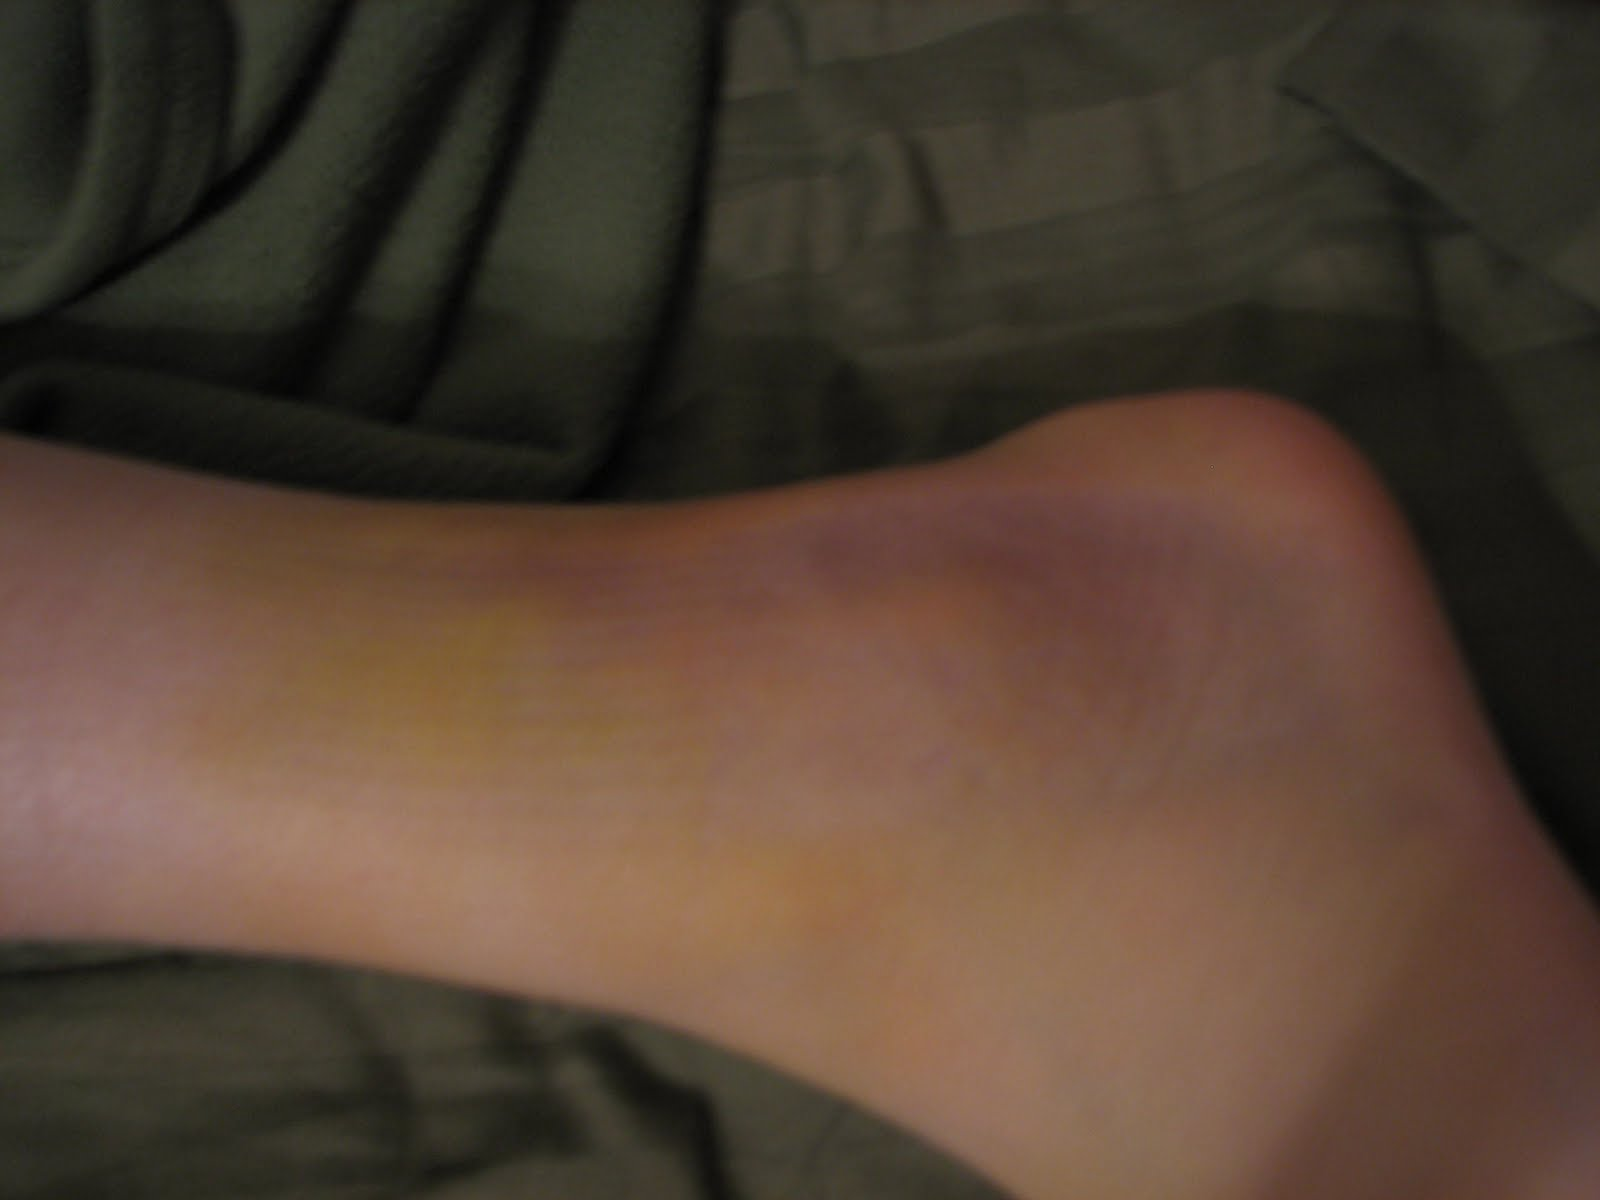 The bruise got nice and yellow and it swelled up for a couple of days